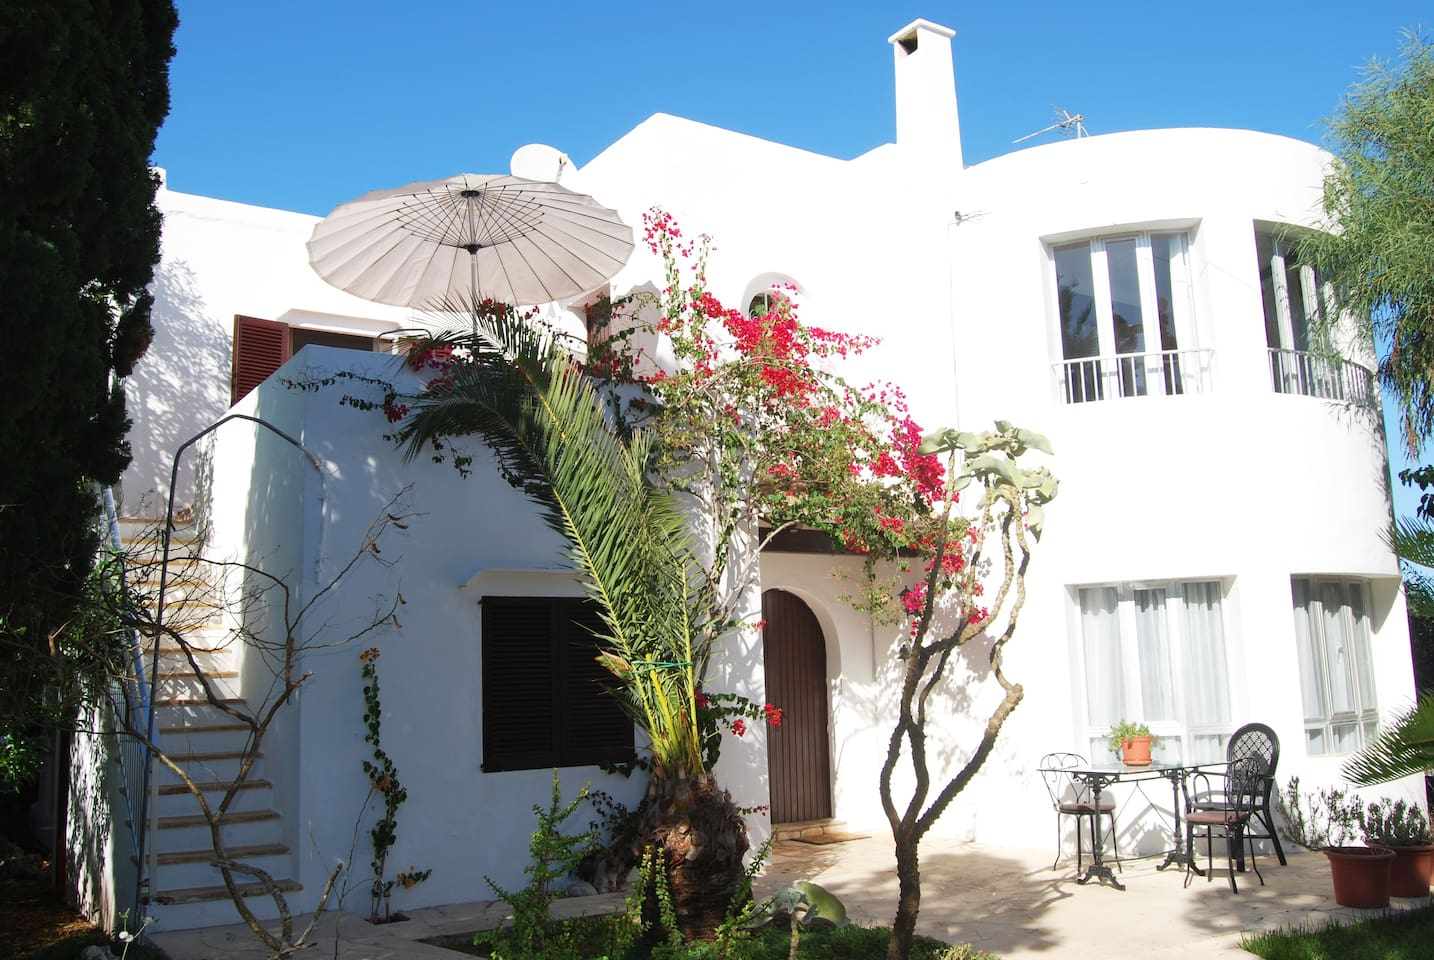 Apartment in villa, ideal for family holidays, close to beaches, supermarkets and shops